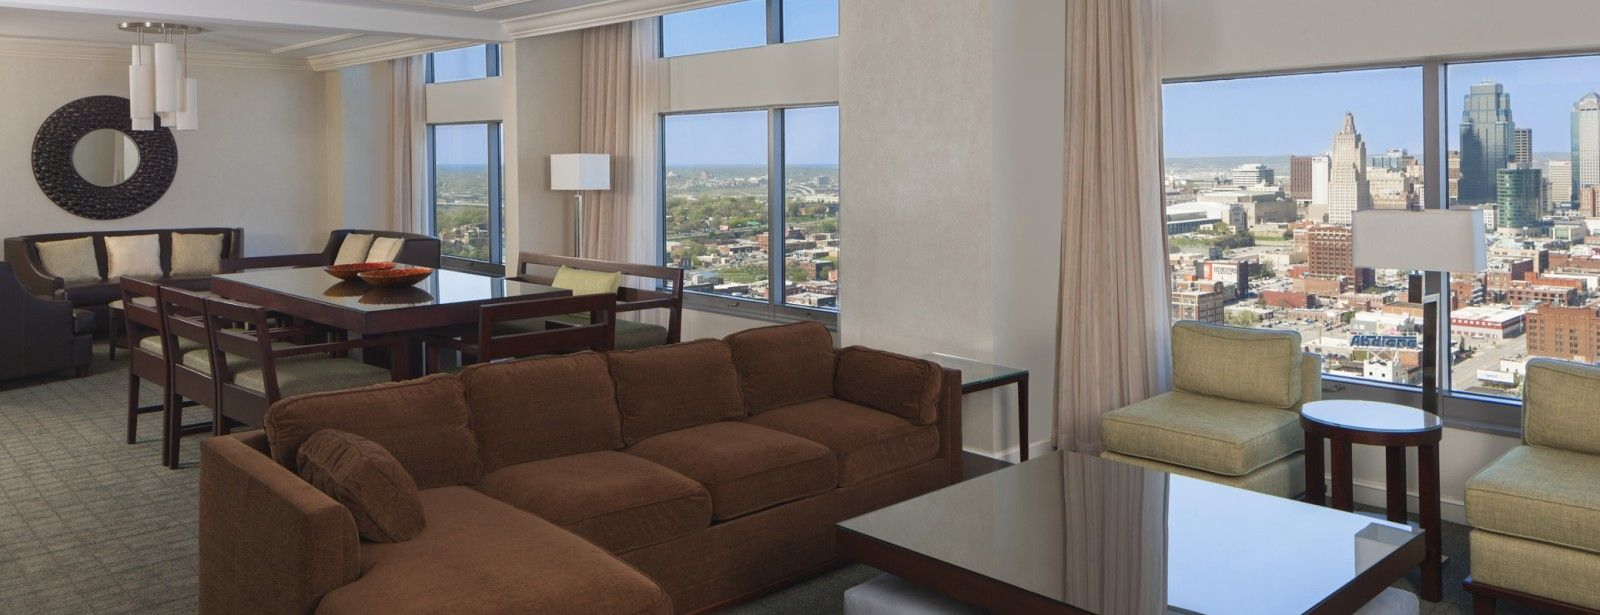 Luxury Suite | Sheraton Kansas City Hotel at Crown Center